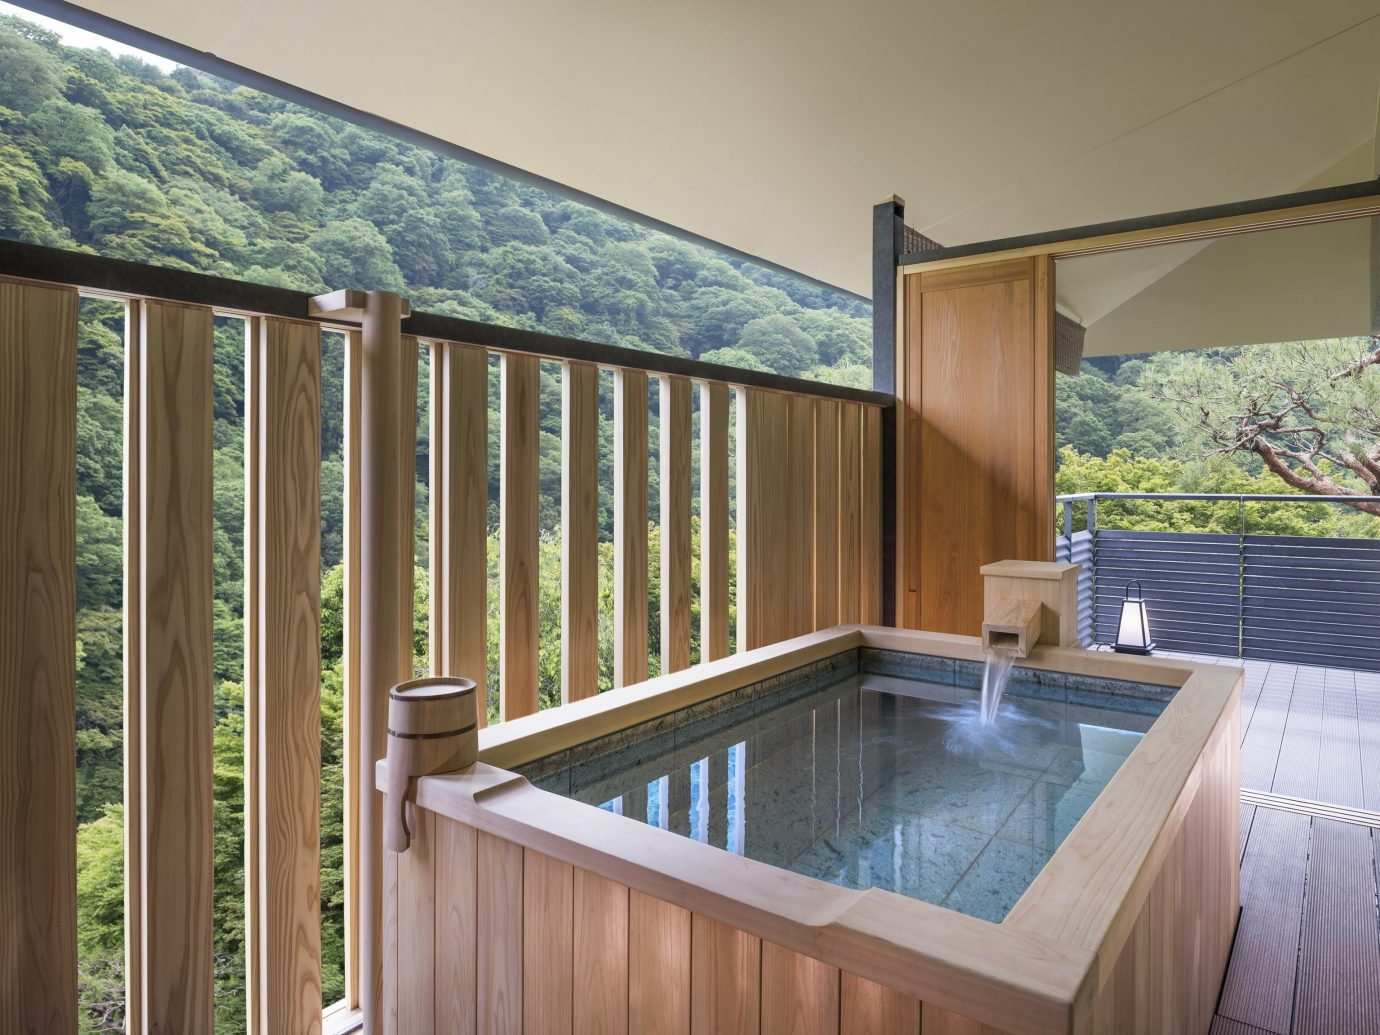 Japan Trip Ideas property room swimming pool house estate real estate home interior design wooden daylighting cottage window outdoor structure area Deck